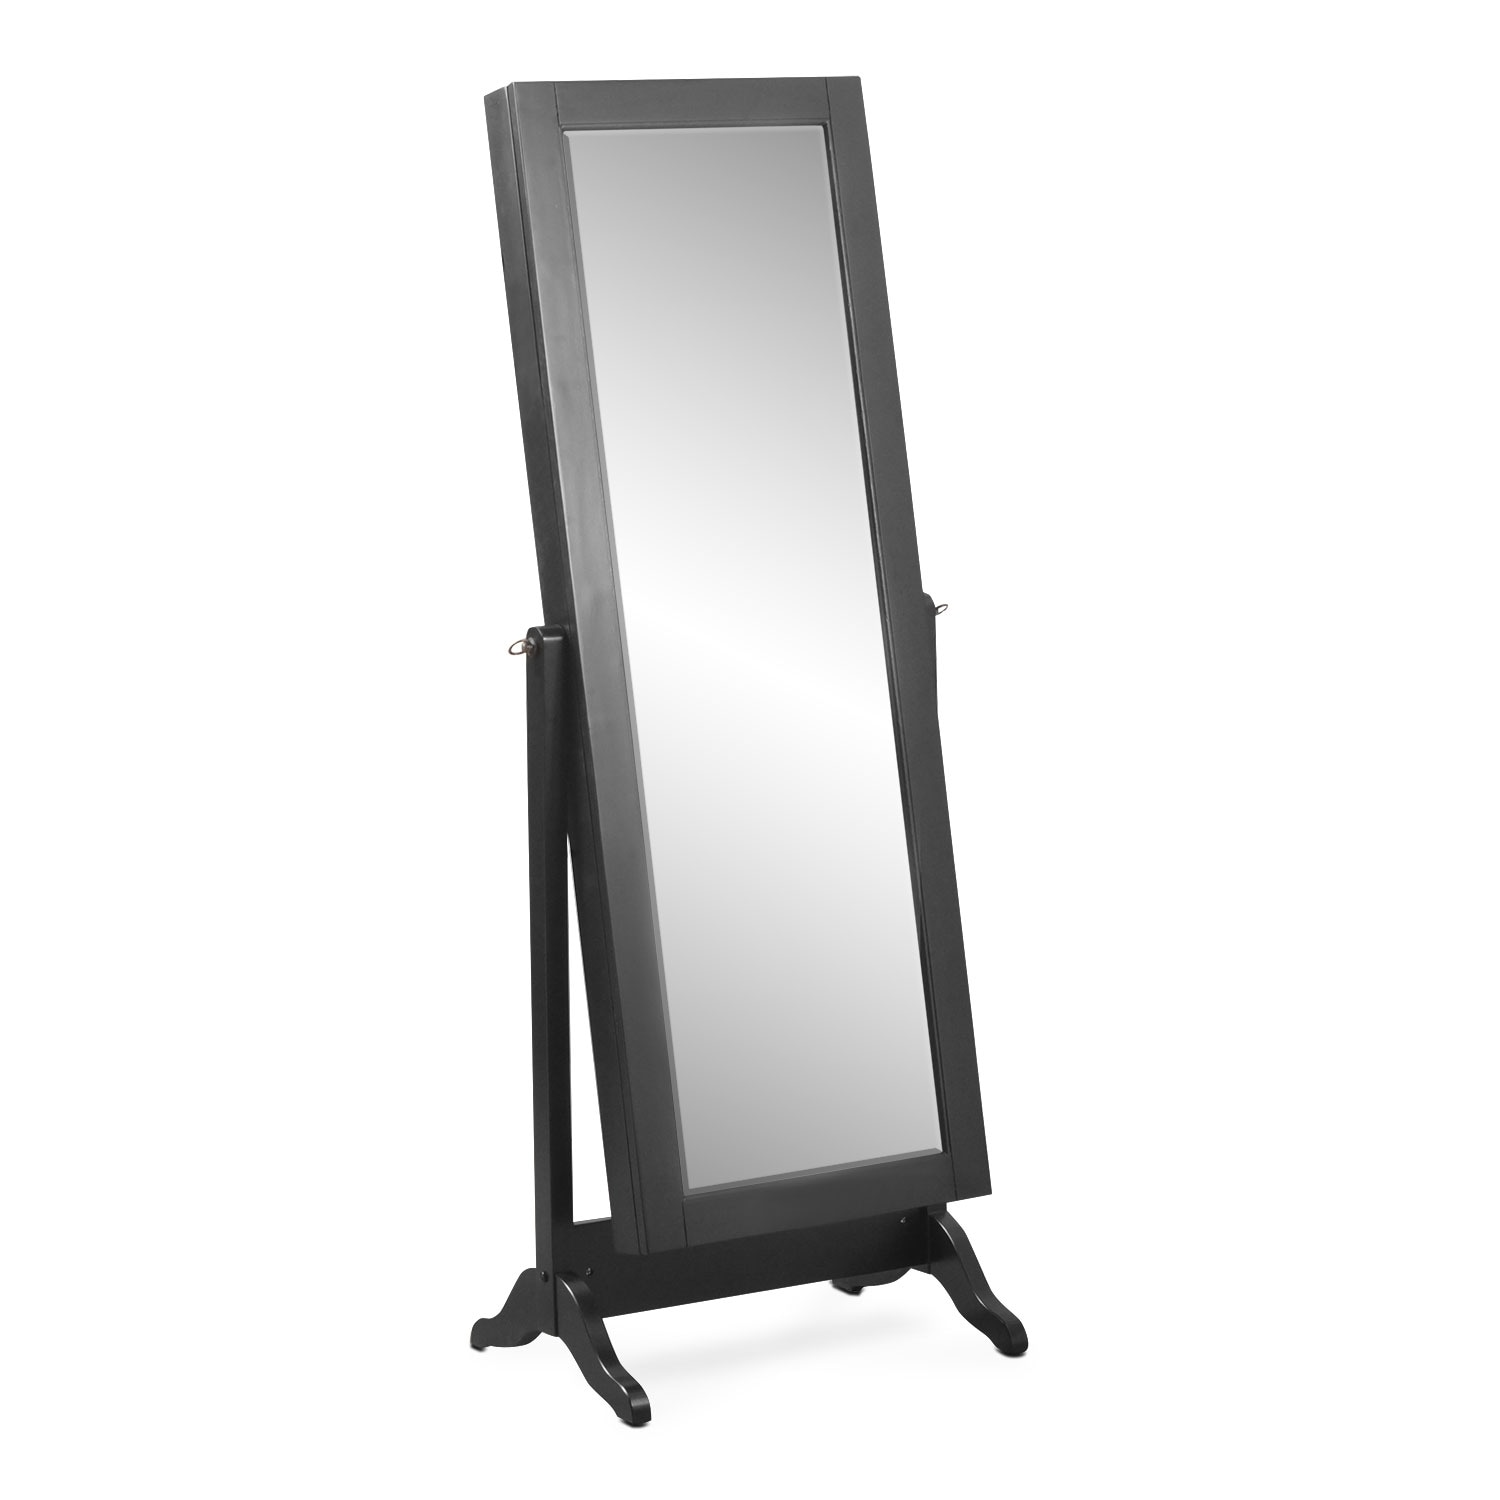 Bedroom Furniture - Loren Cheval Storage Mirror - Black